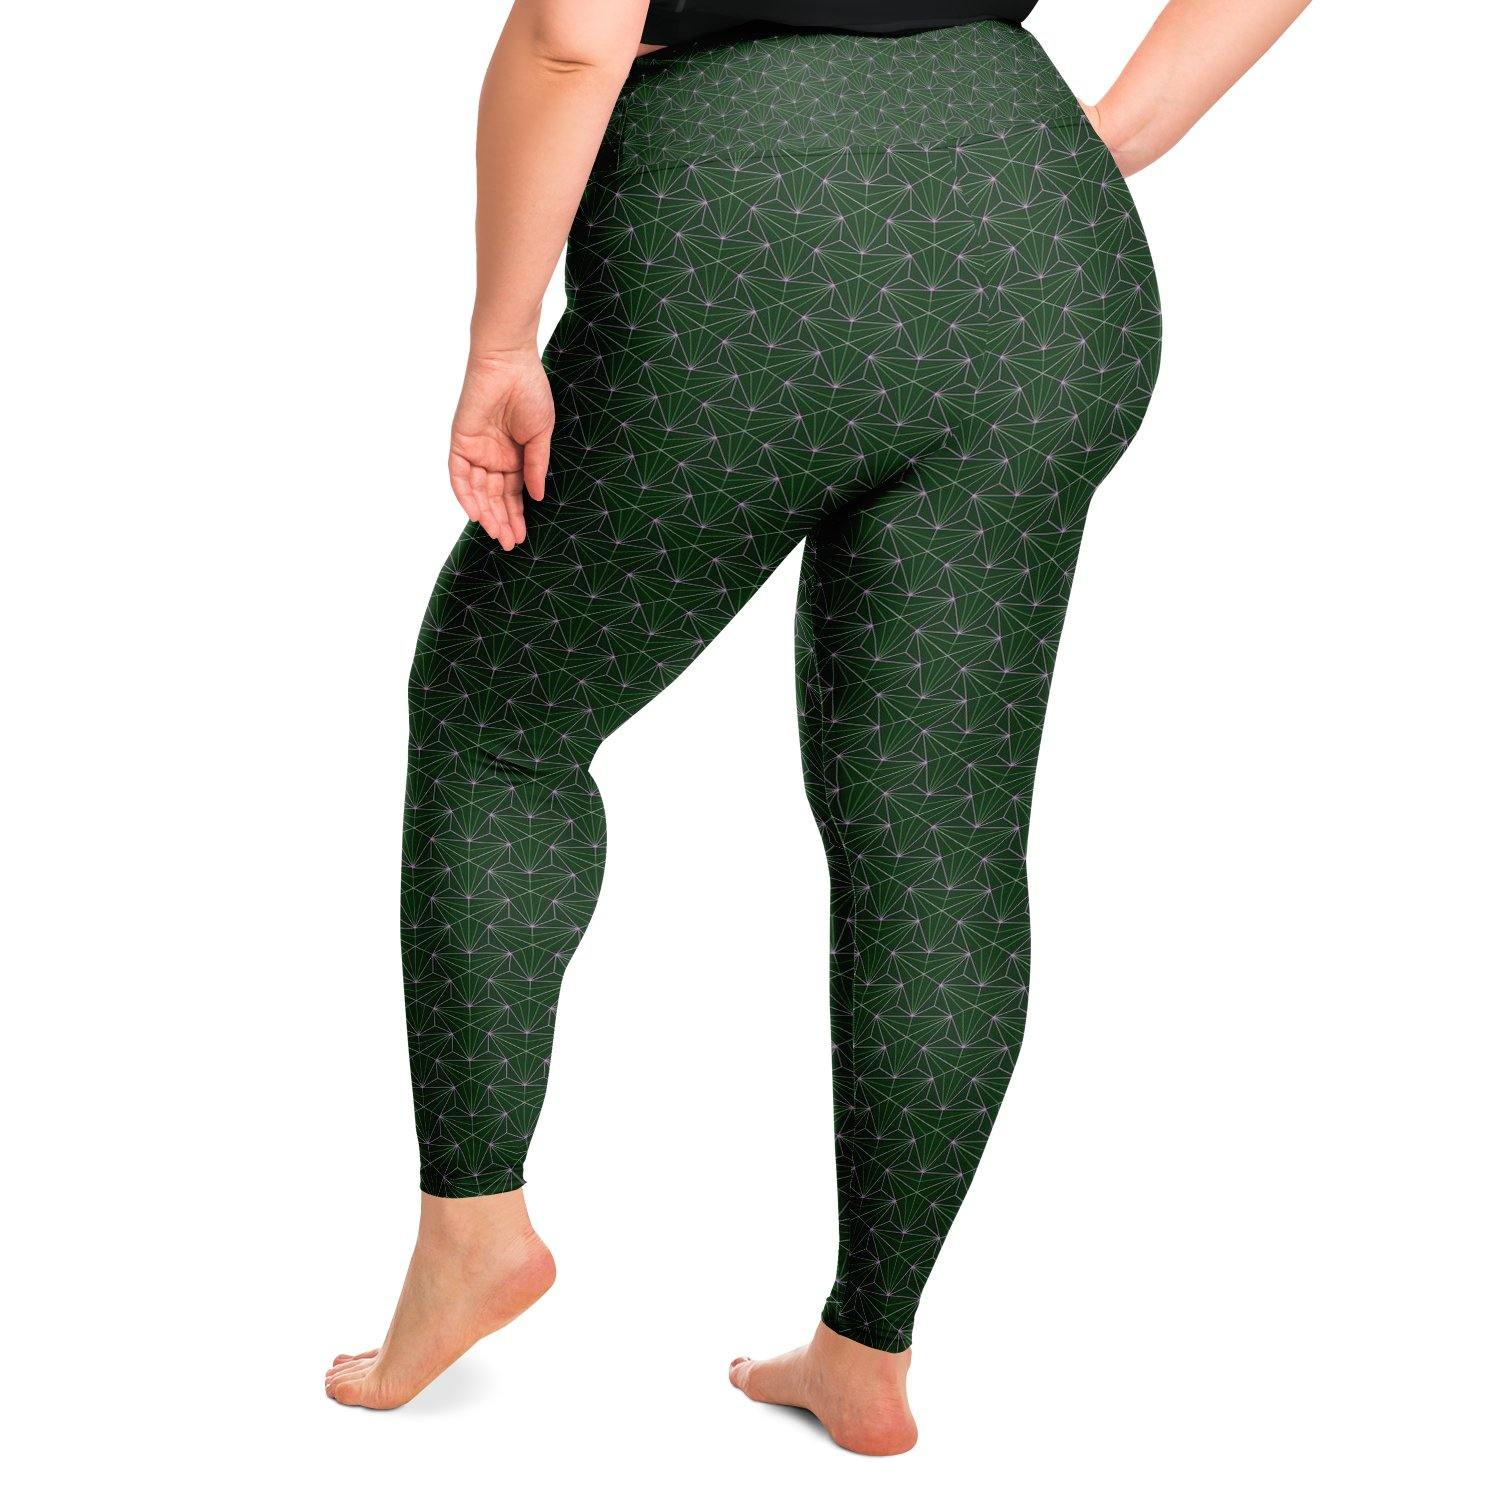 Jade Sacred Connections Premium Plus Size Yoga Leggings - Manifestie